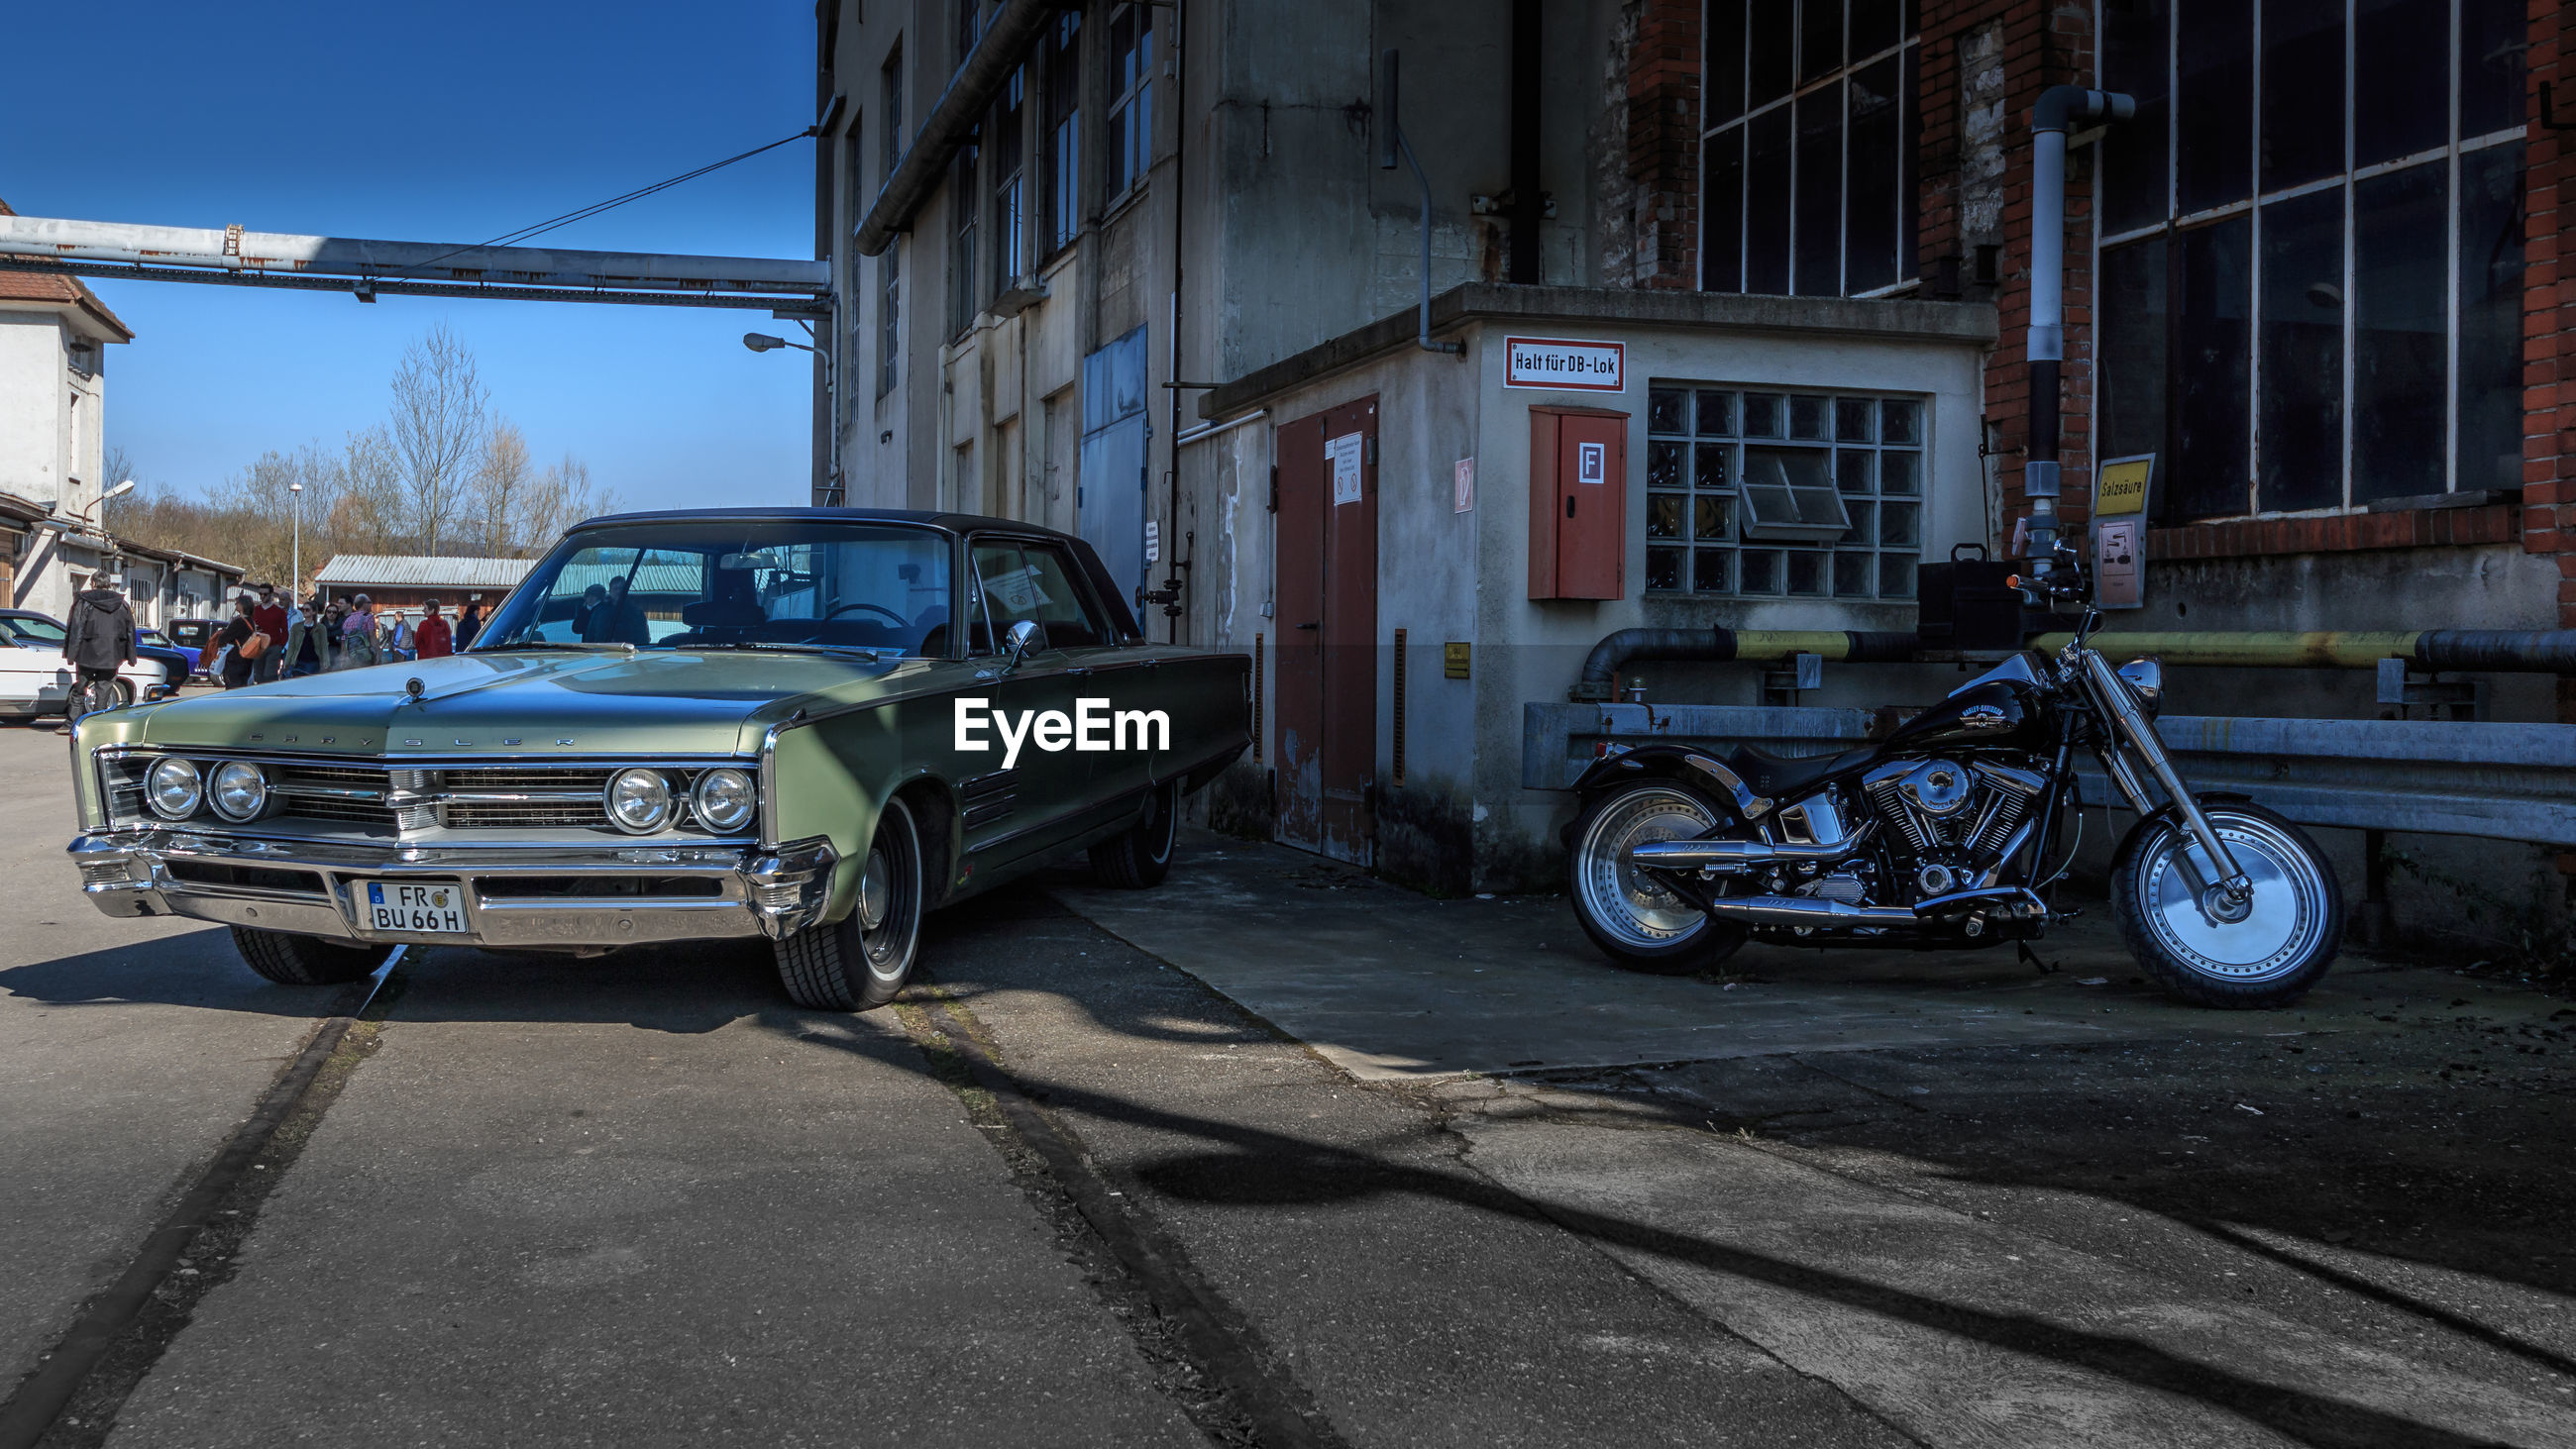 transportation, mode of transportation, land vehicle, motor vehicle, car, architecture, city, building exterior, built structure, road, street, vintage car, retro styled, building, day, outdoors, damaged, no people, stationary, garage